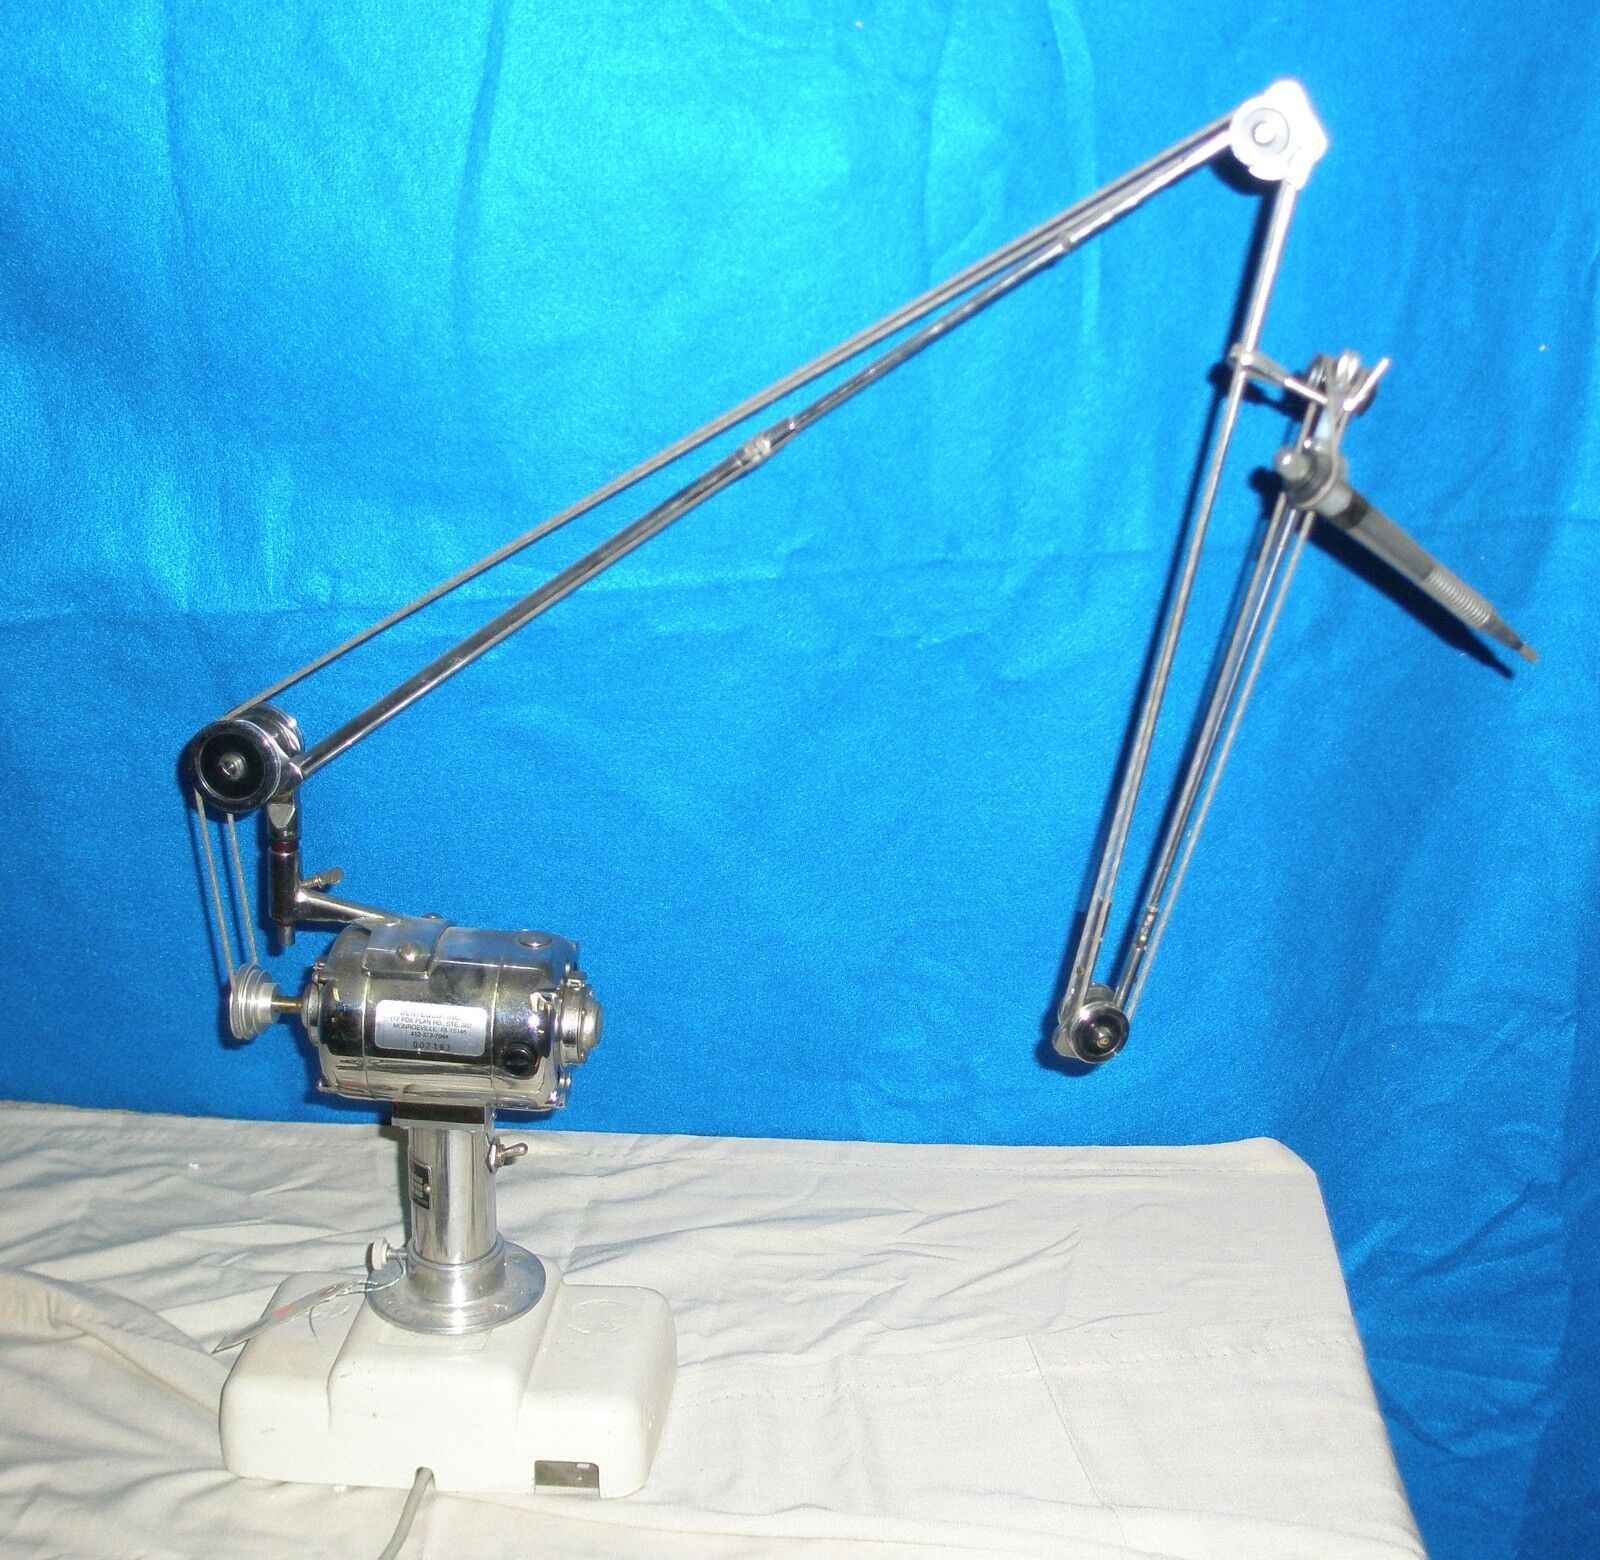 Image 1 - Dental-Bench-Engine-Unit-with-Handpiece-2-Available-7183A